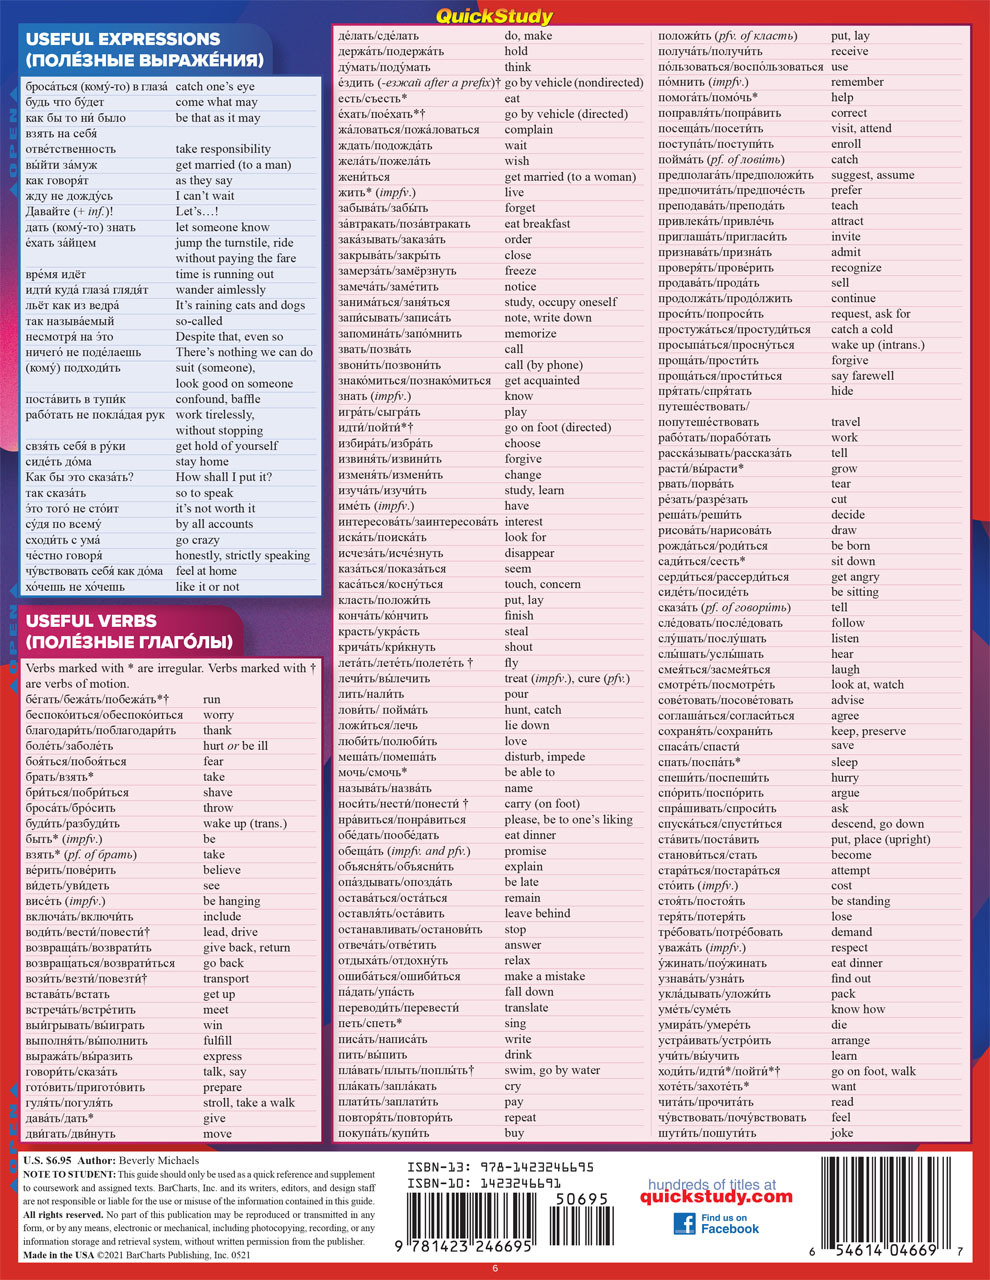 Quick Study QuickStudy Russian Verbs Laminated Study Guide BarCharts Publishing Foreign Language Reference Back Image